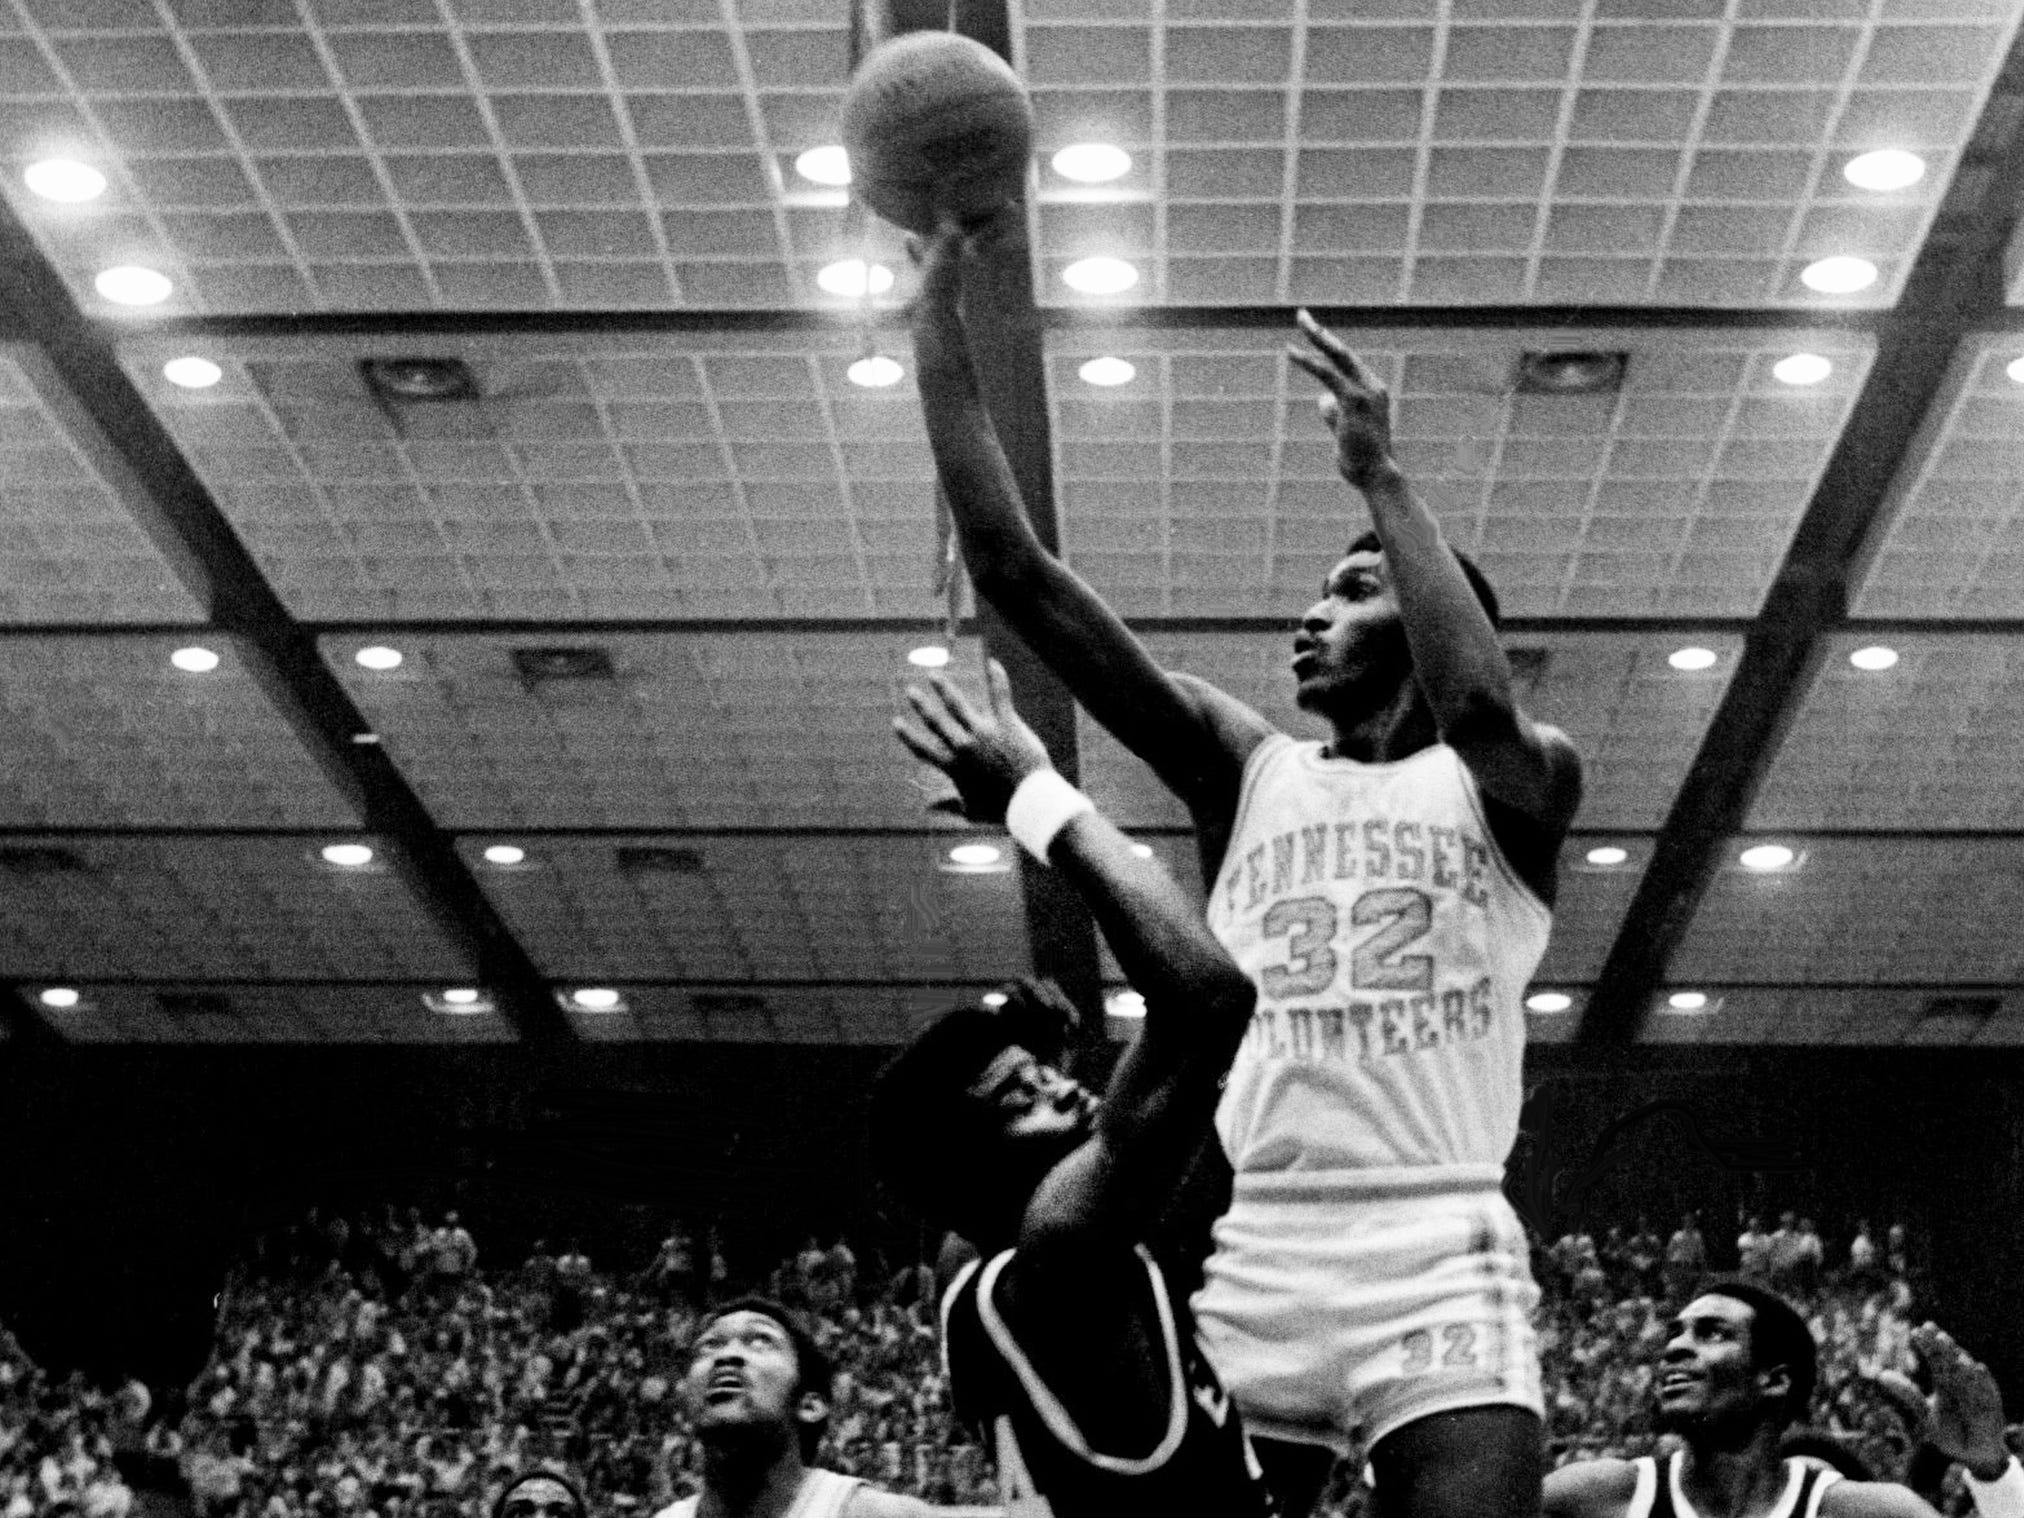 Tennessee junior forward Reggie Johnson (32) shoots for two as the Vols defeats Eastern Kentucky 97-81 in the NCAA Mideast Regional tournament at MTSU's Murphy Center in Murfreesboro on March 9, 1979.